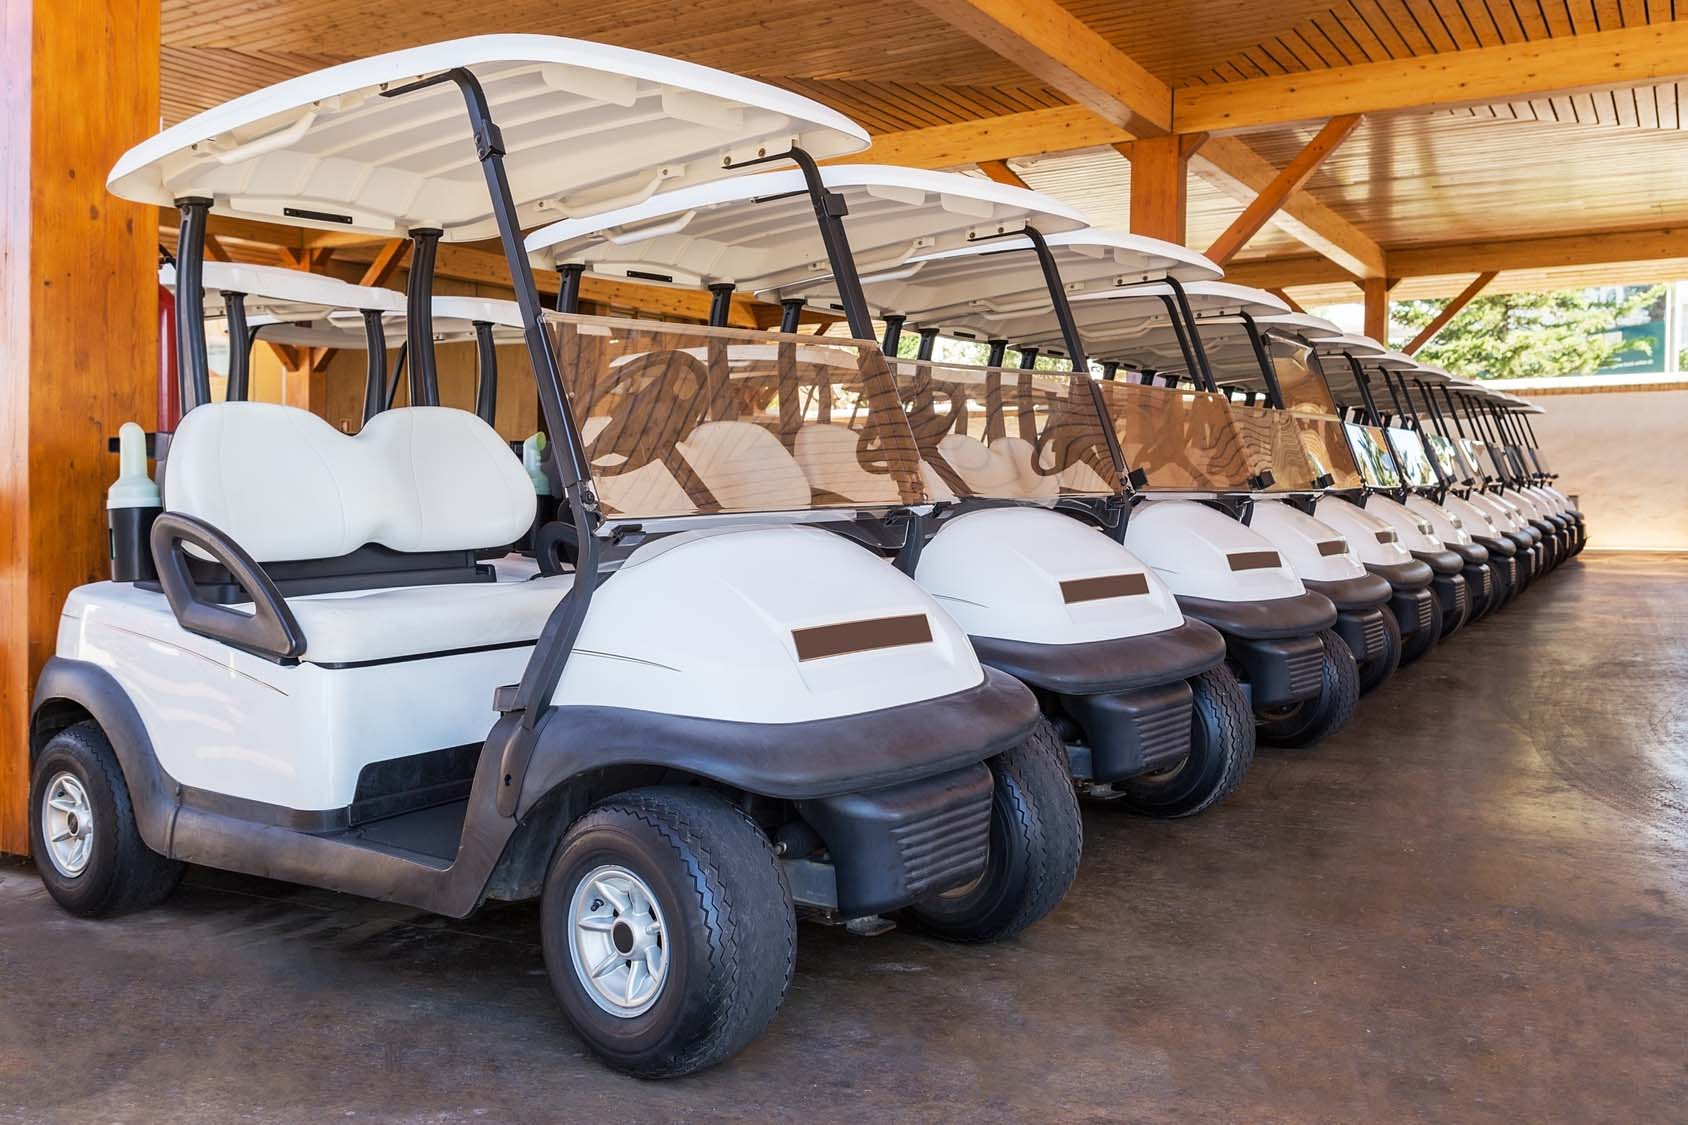 Golf Car Sales, Service, Repairs & Rentals